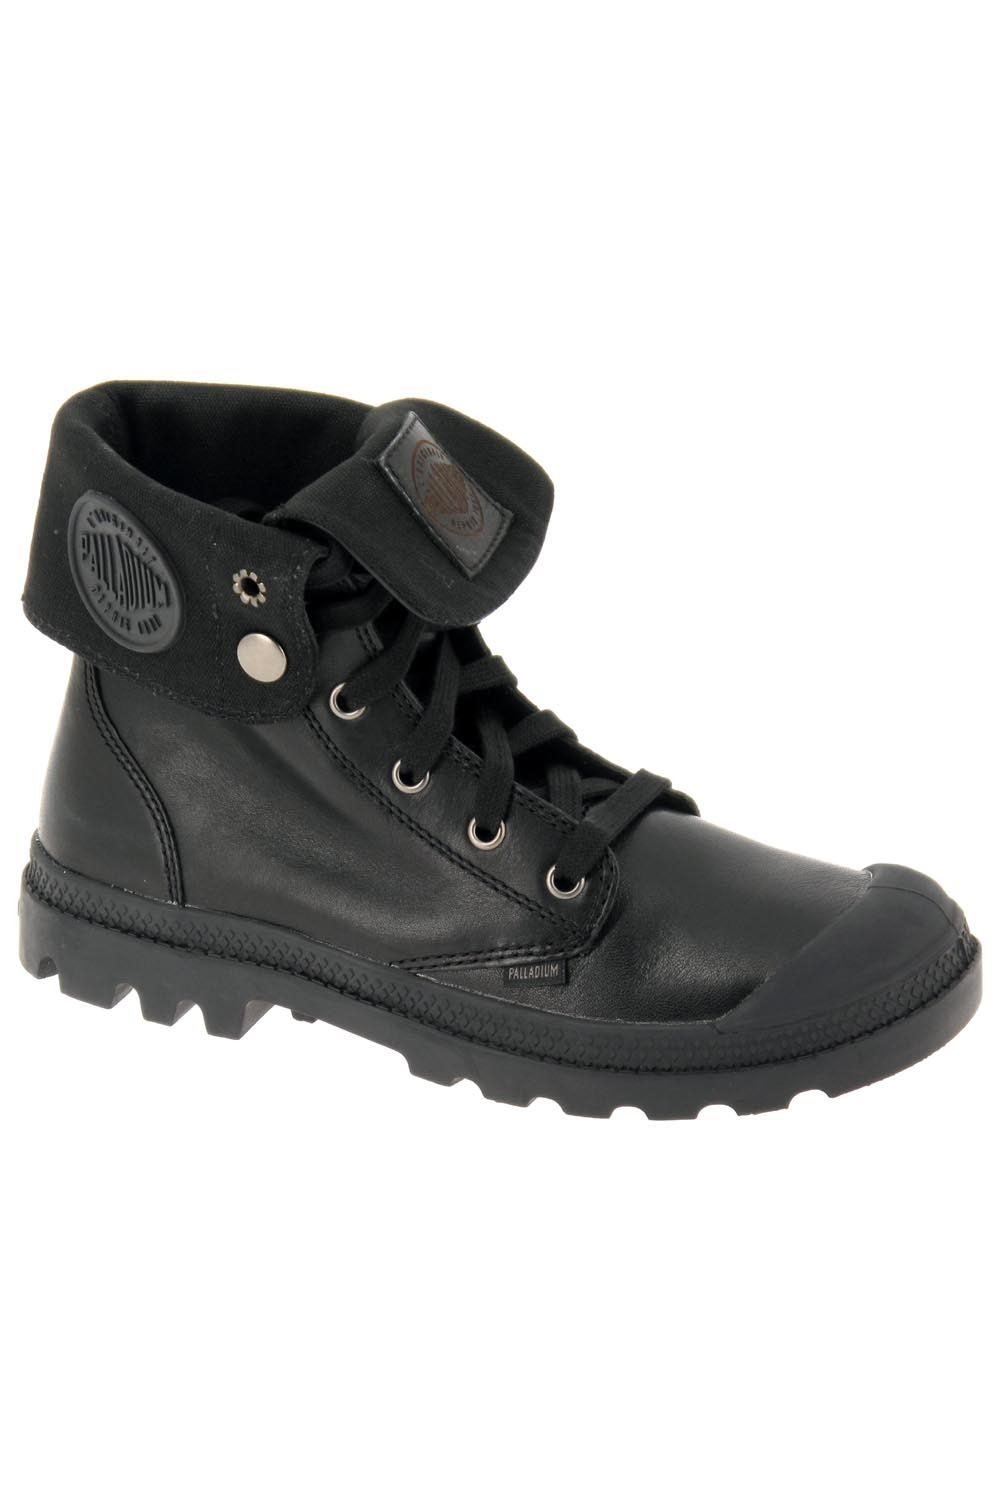 Palladium Noires Vernies